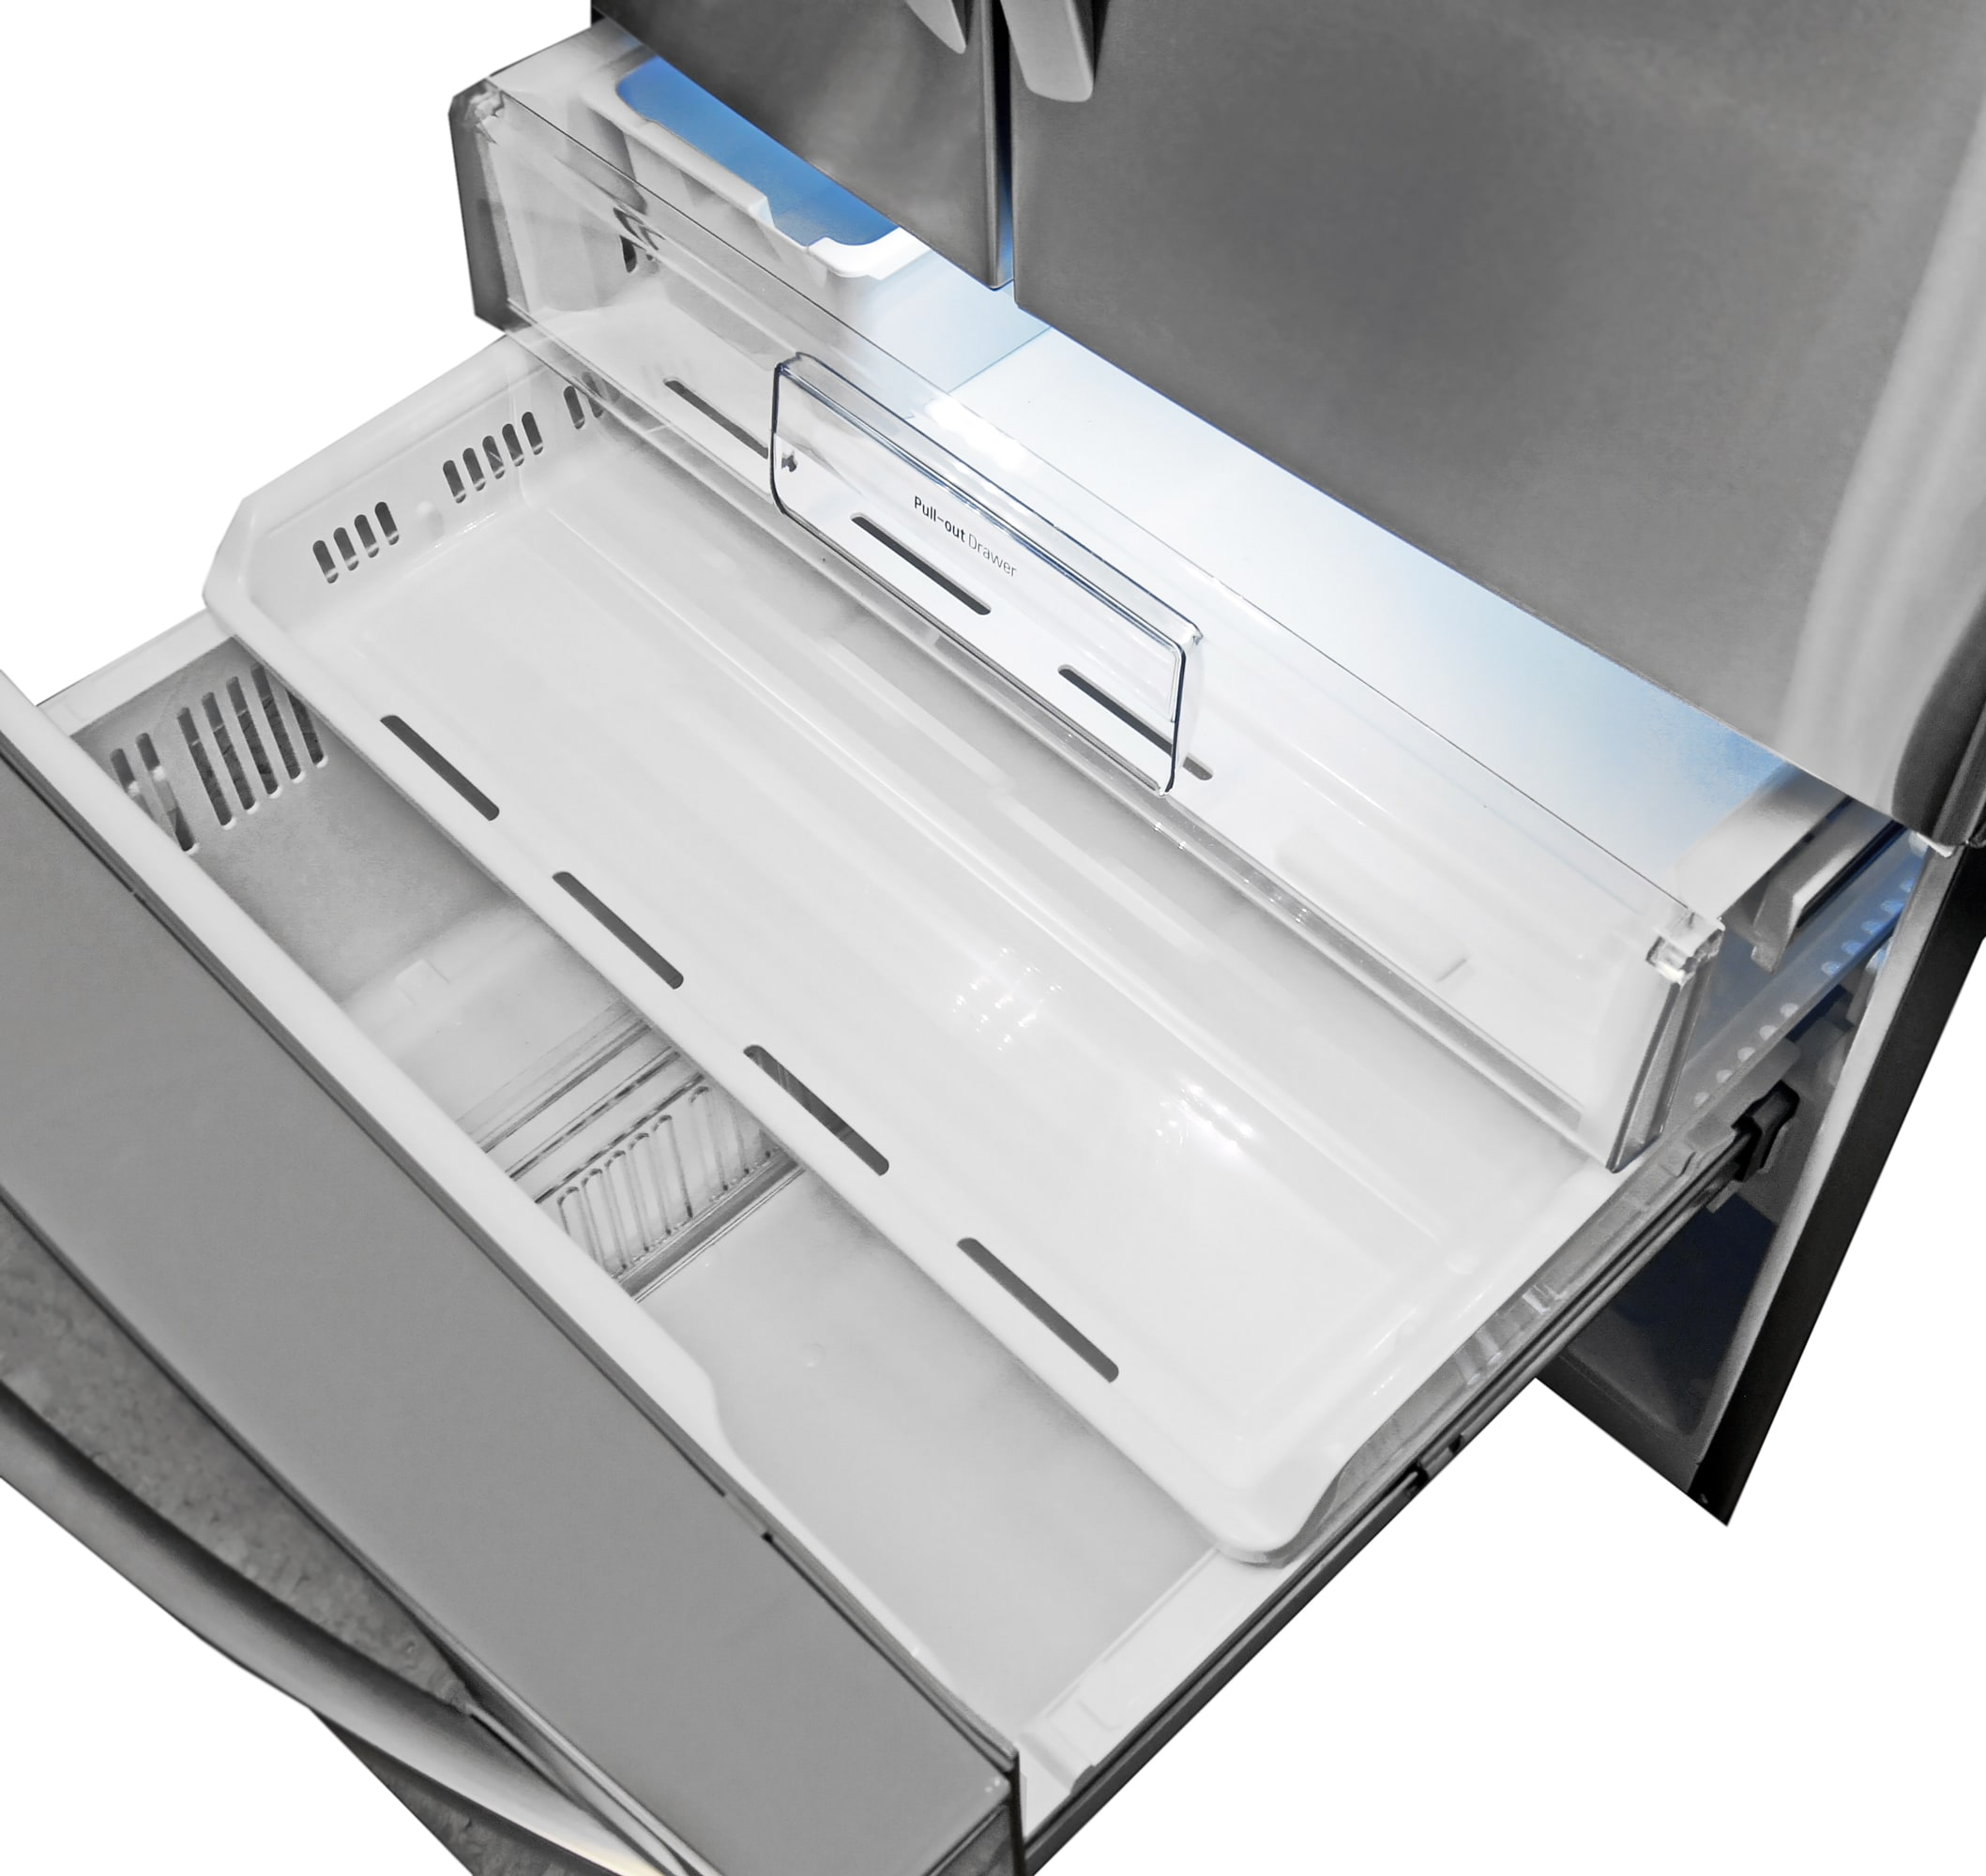 Despite all the compartments in the fridge, the LG LFX32945ST's pull out freezer is actually quite straightforward.